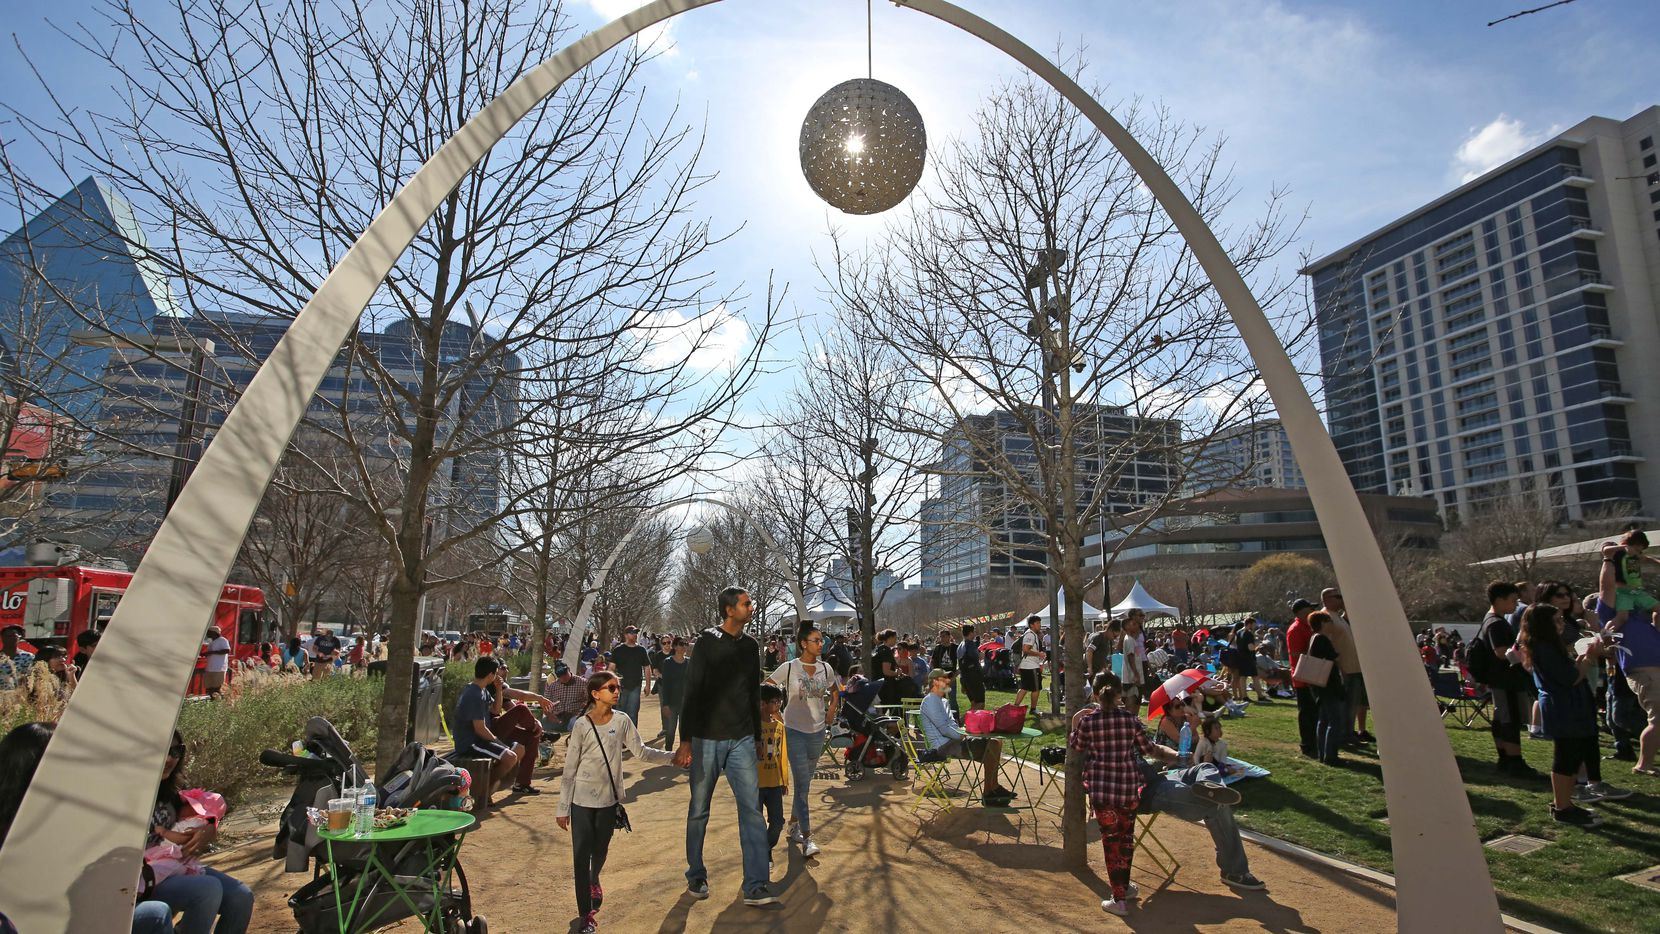 Families took advantage of mild temperatures during March to enjoy Klyde Warren Park in downtown Dallas.